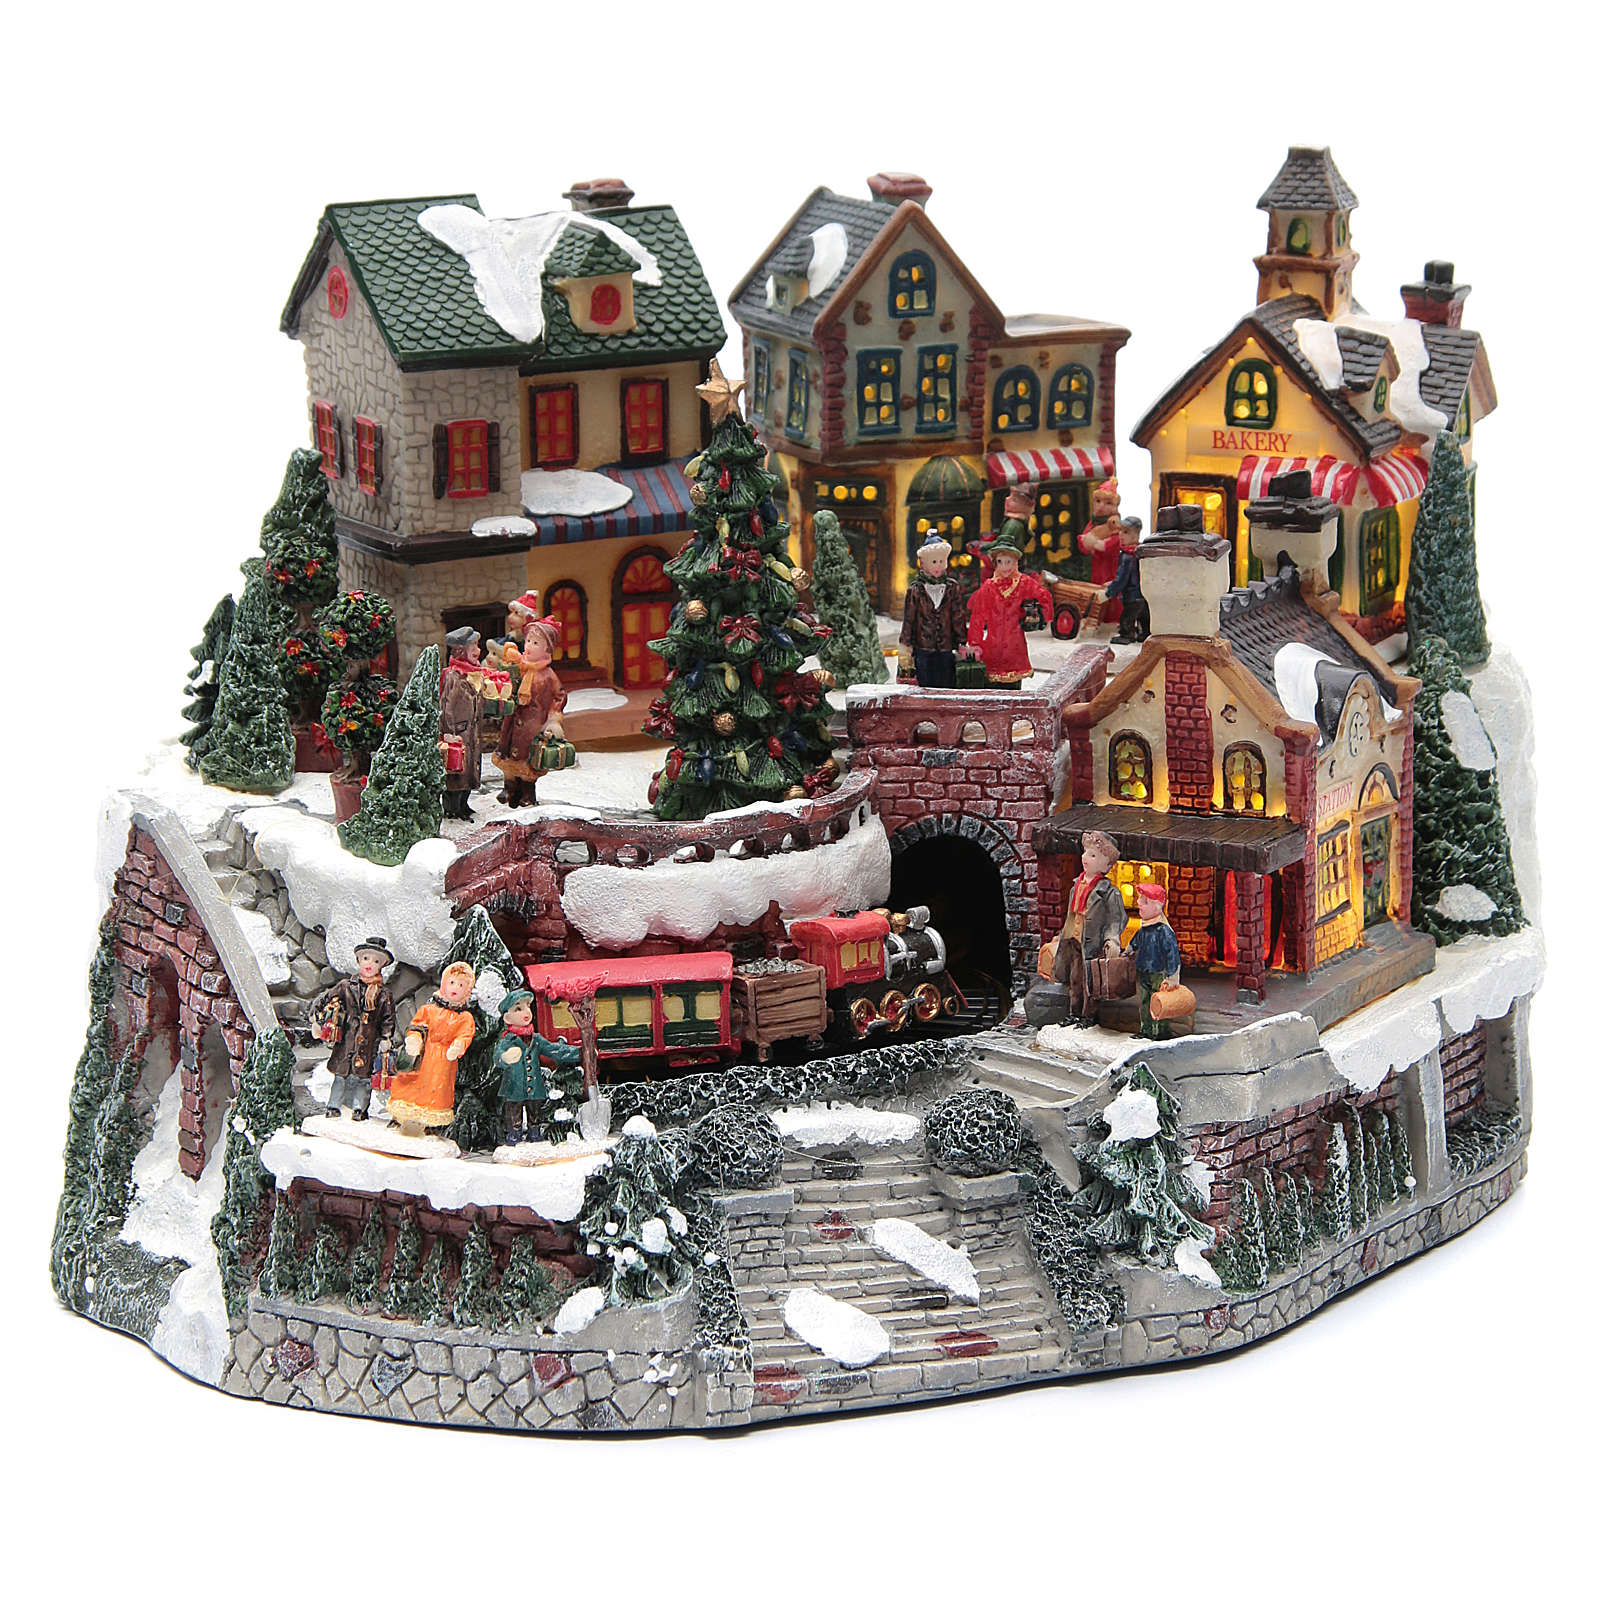 Animated Christmas Village With Train 35x25x20 Cm Online